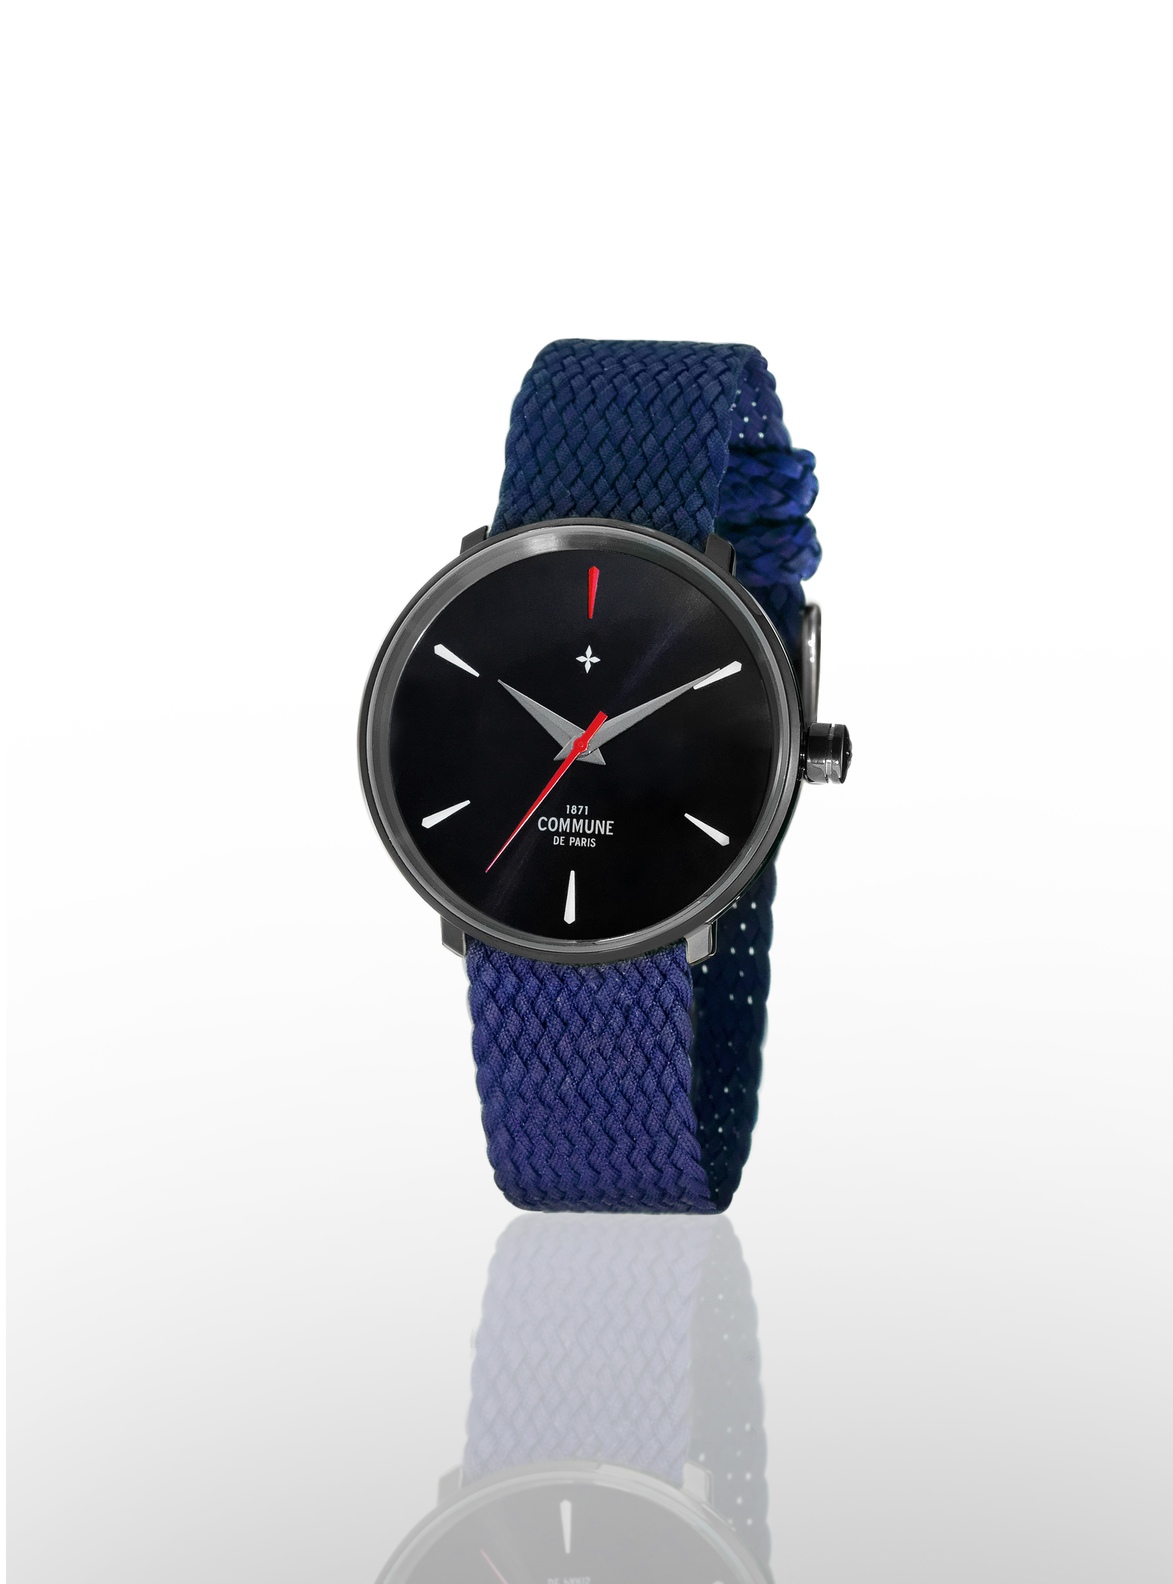 WATCH BRUMAIRE - Nb dark blue